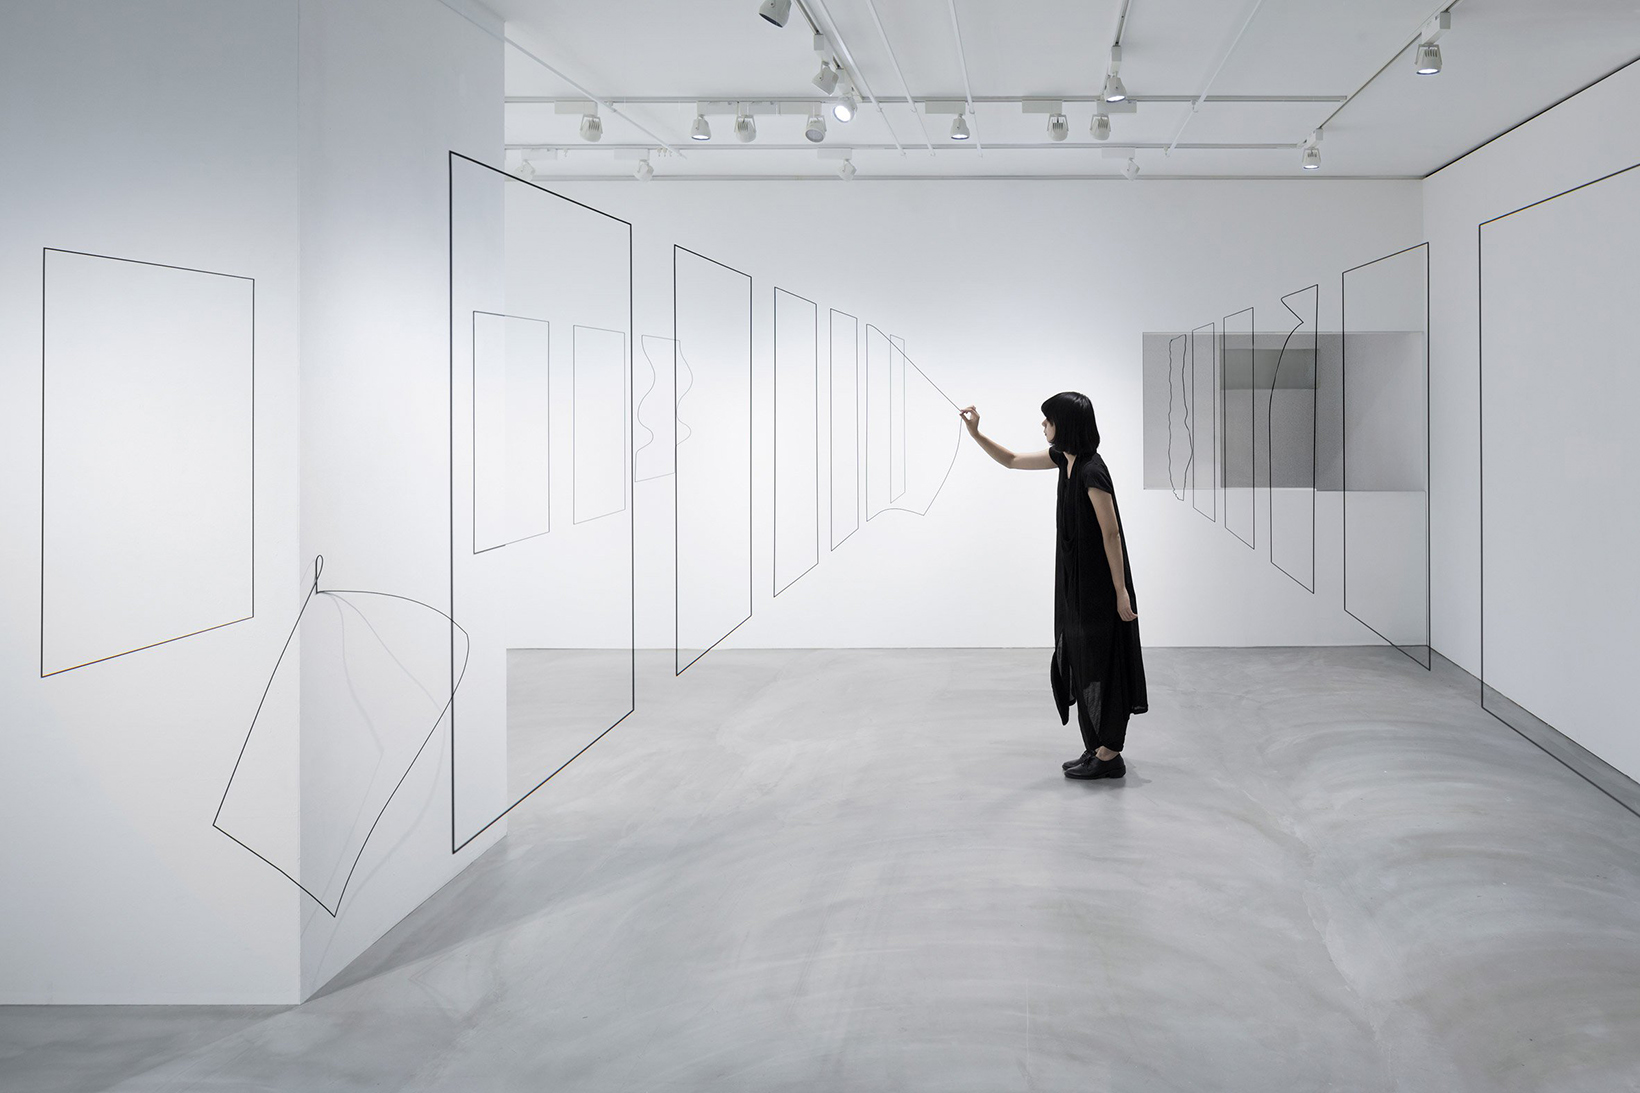 nendo Uses 3D-Printed Objects to Depict Sheets of Paper